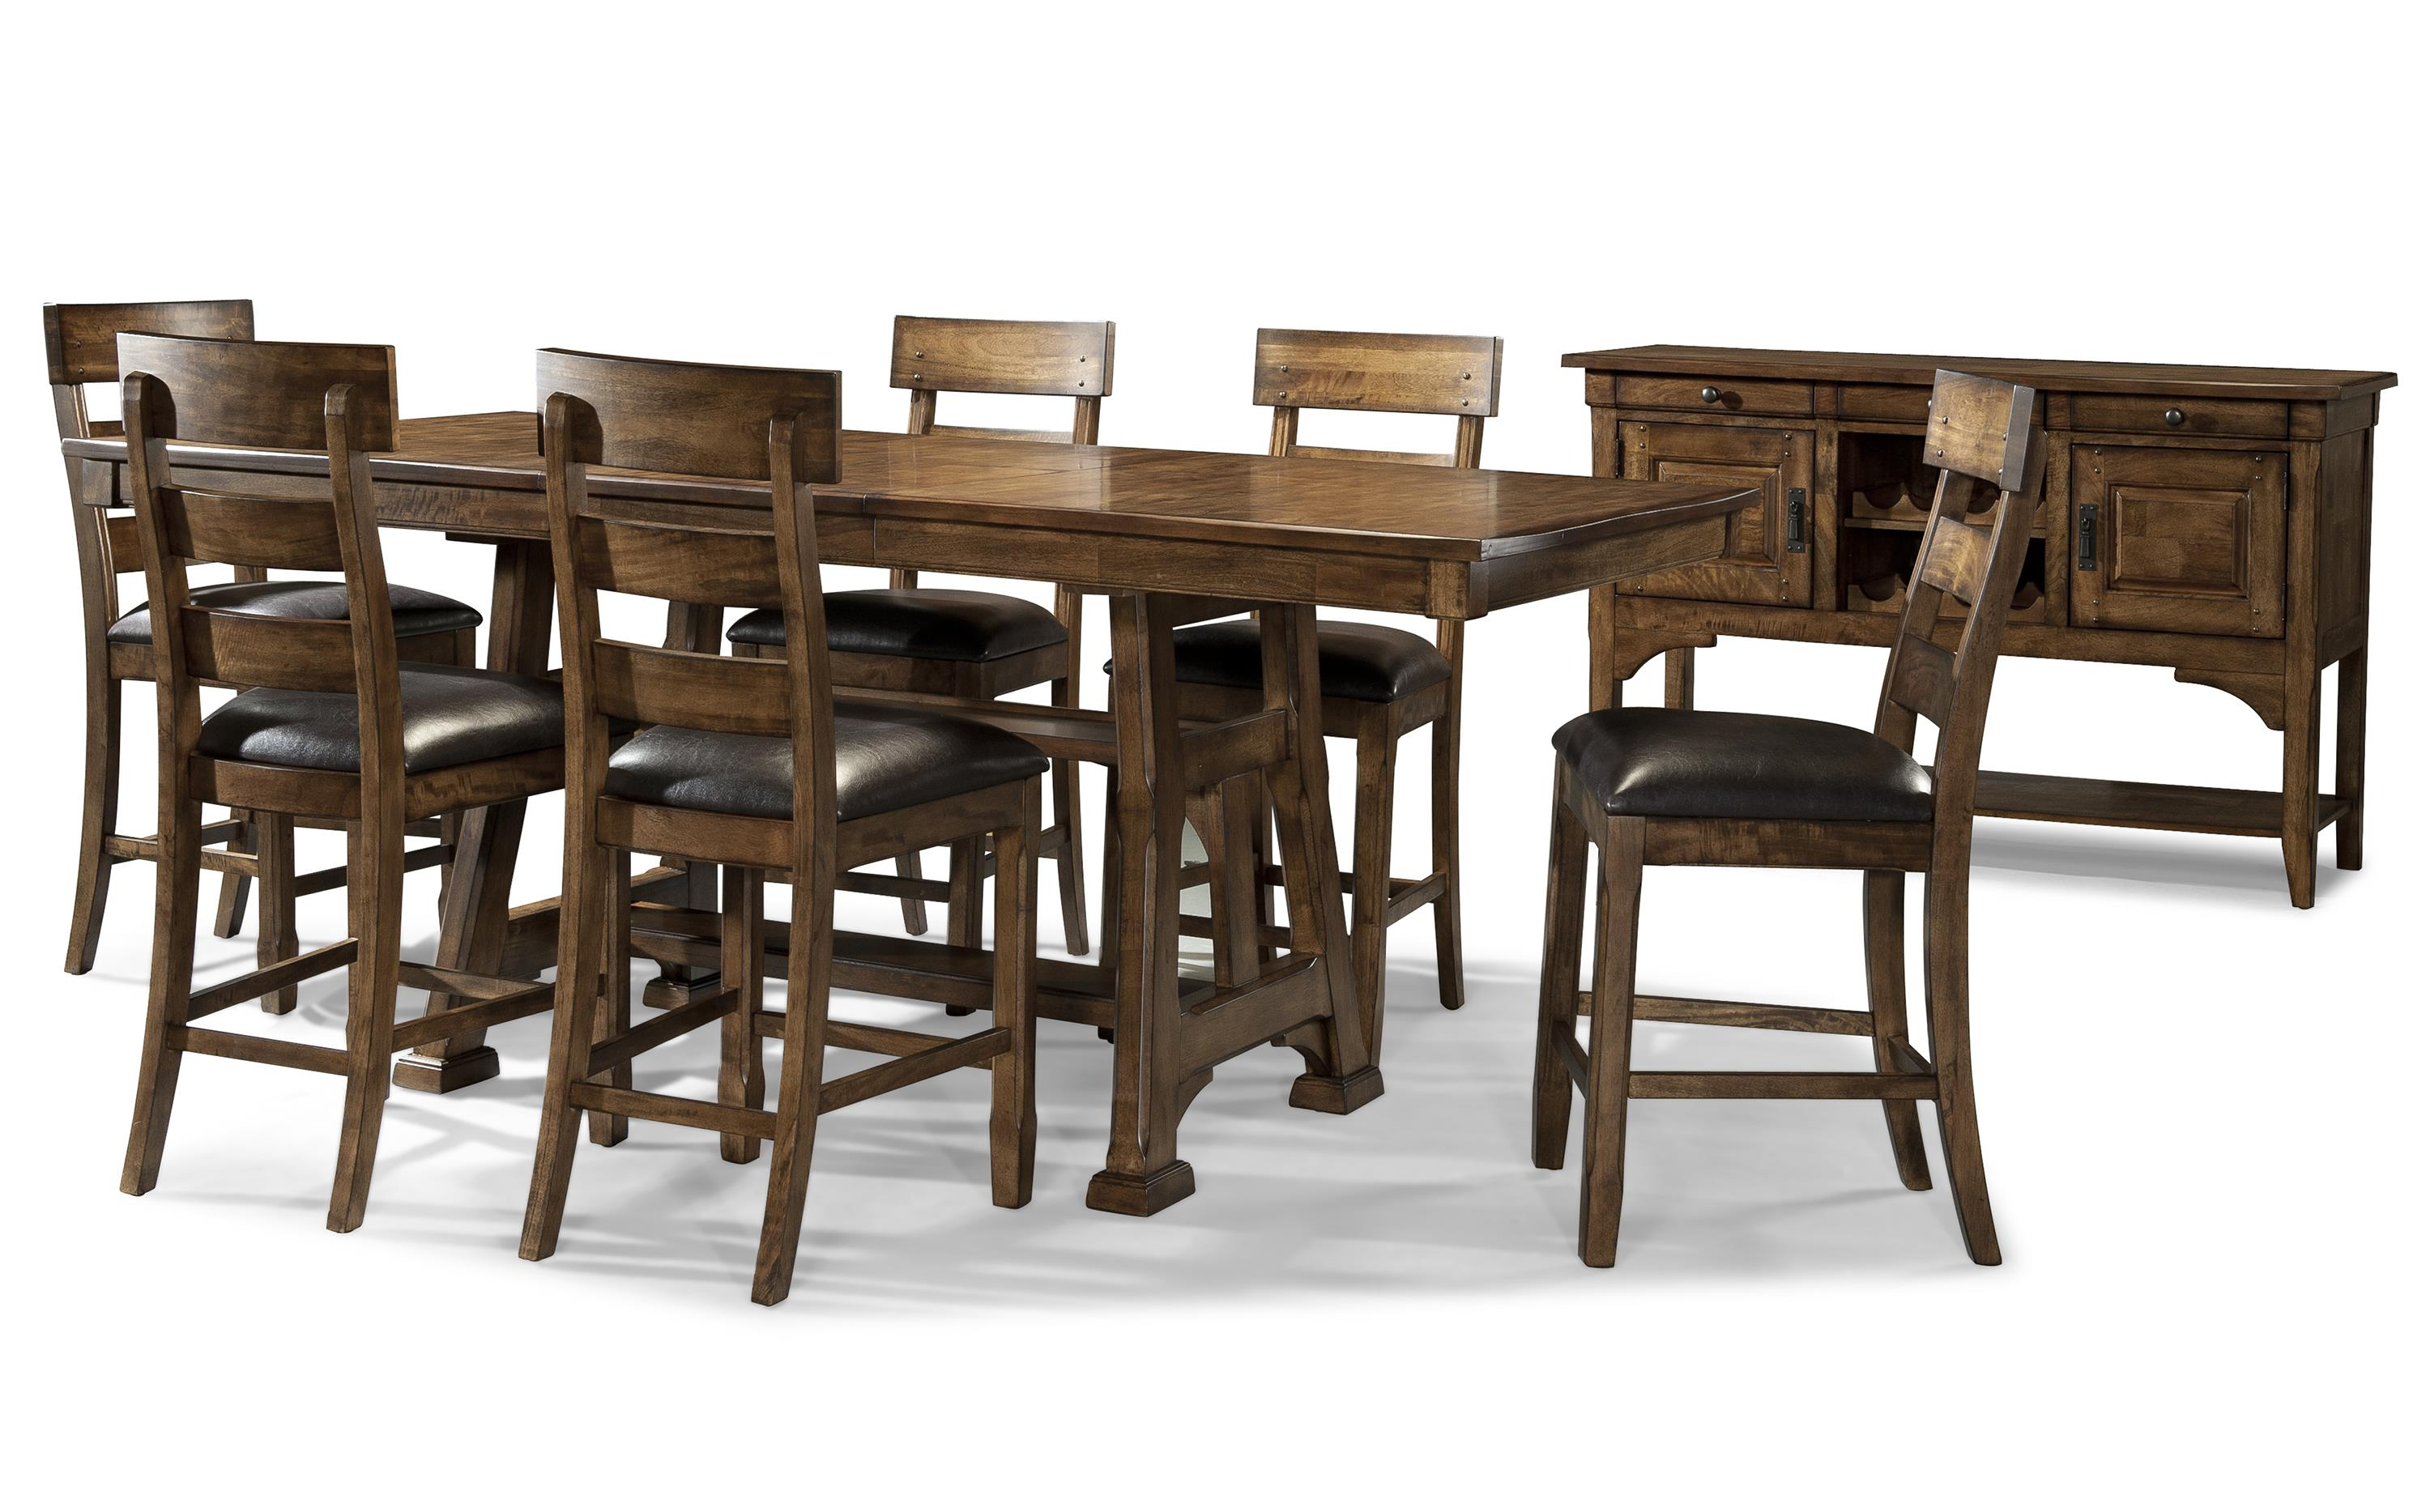 AAmerica Ozark Casual Gathering Height Dining Room Group - Item Number: OZA-MA Pub Dining Room Group 2